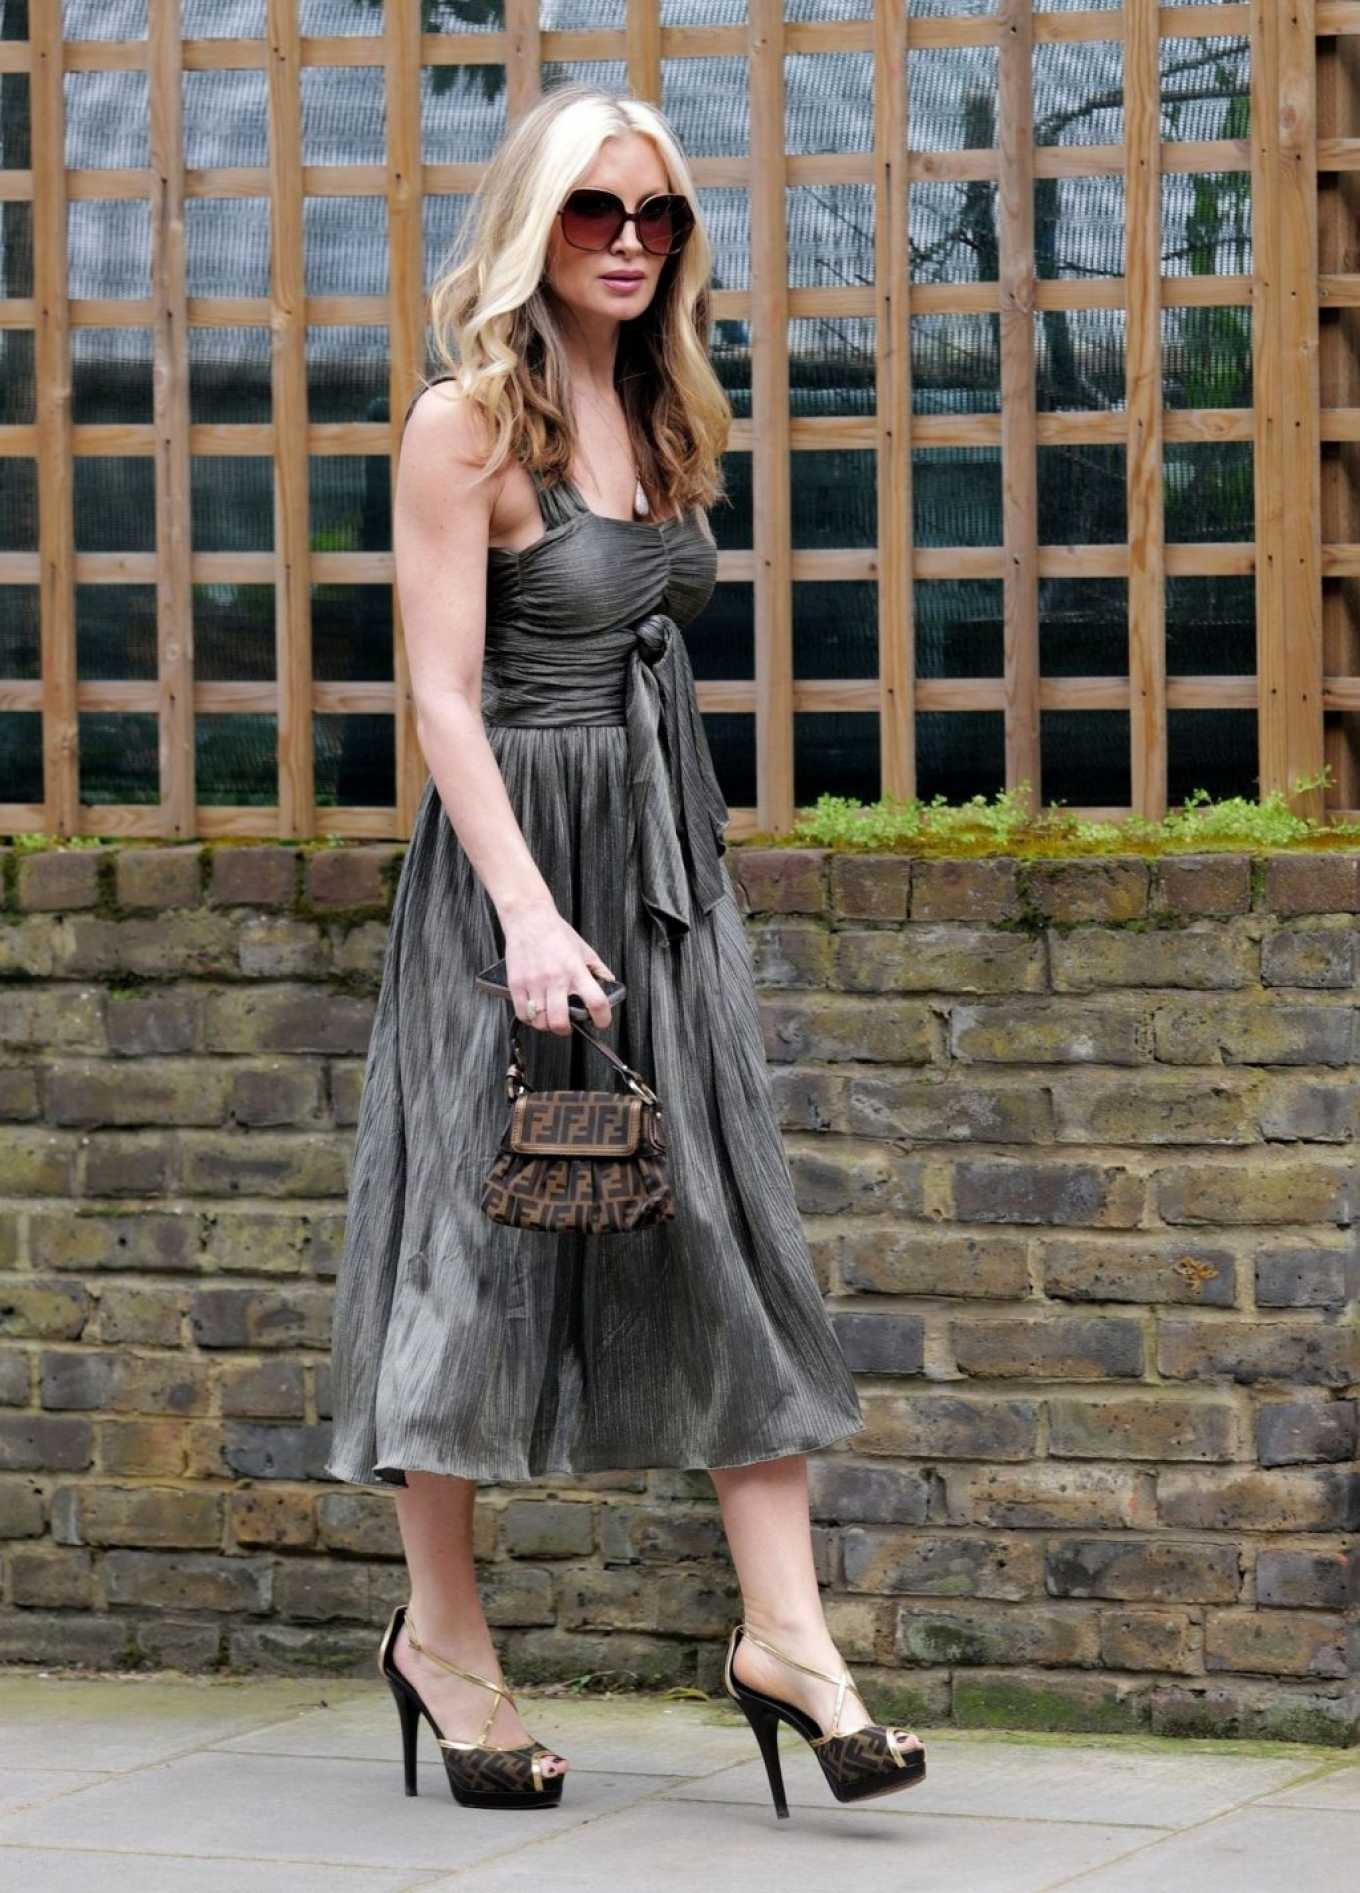 Caprice Bourret 2020 : Caprice Bourret – Out in London-16